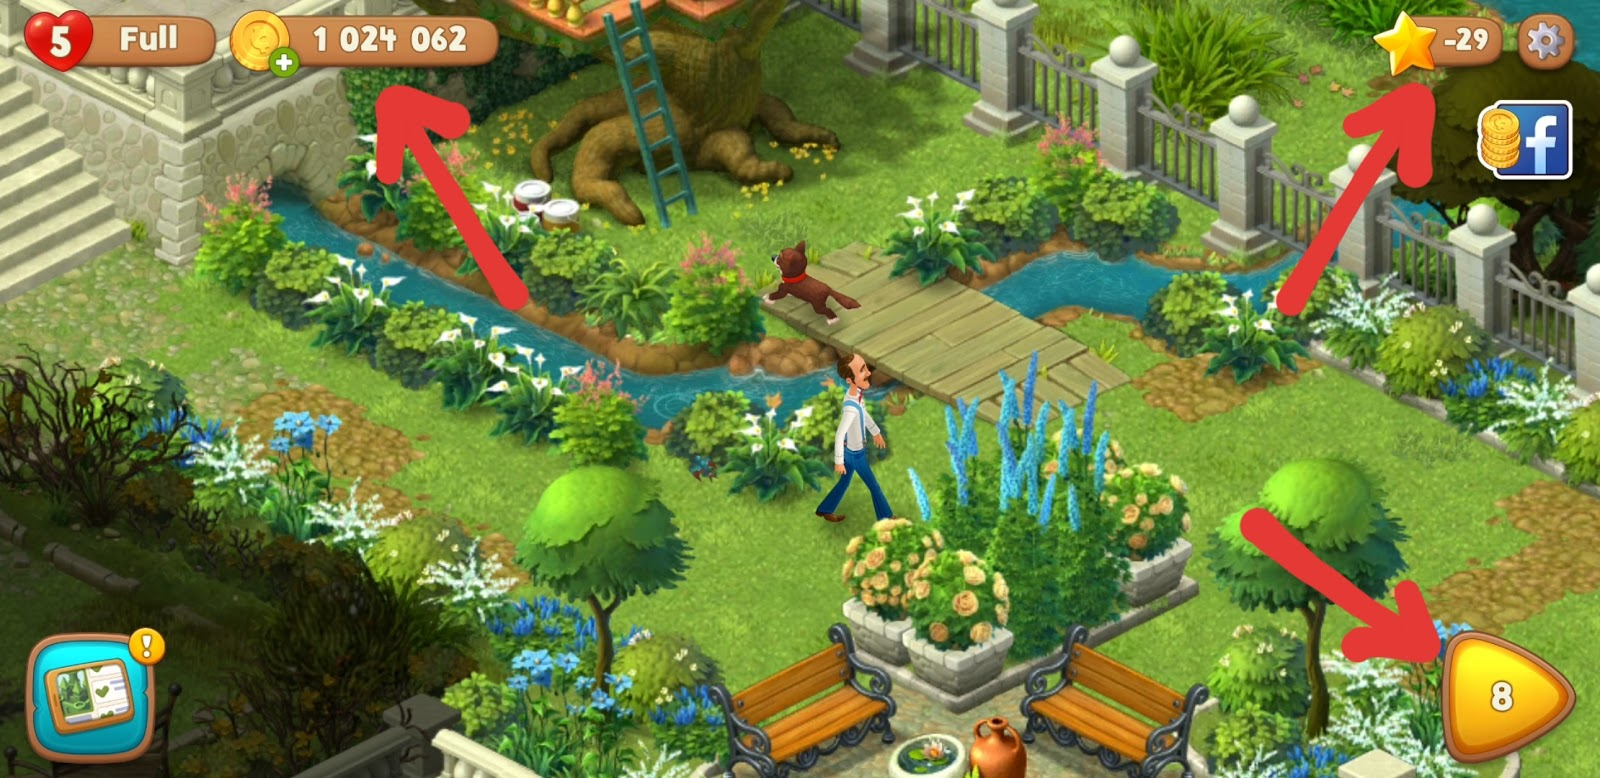 gardenscapes mod apk unlimited money and stars